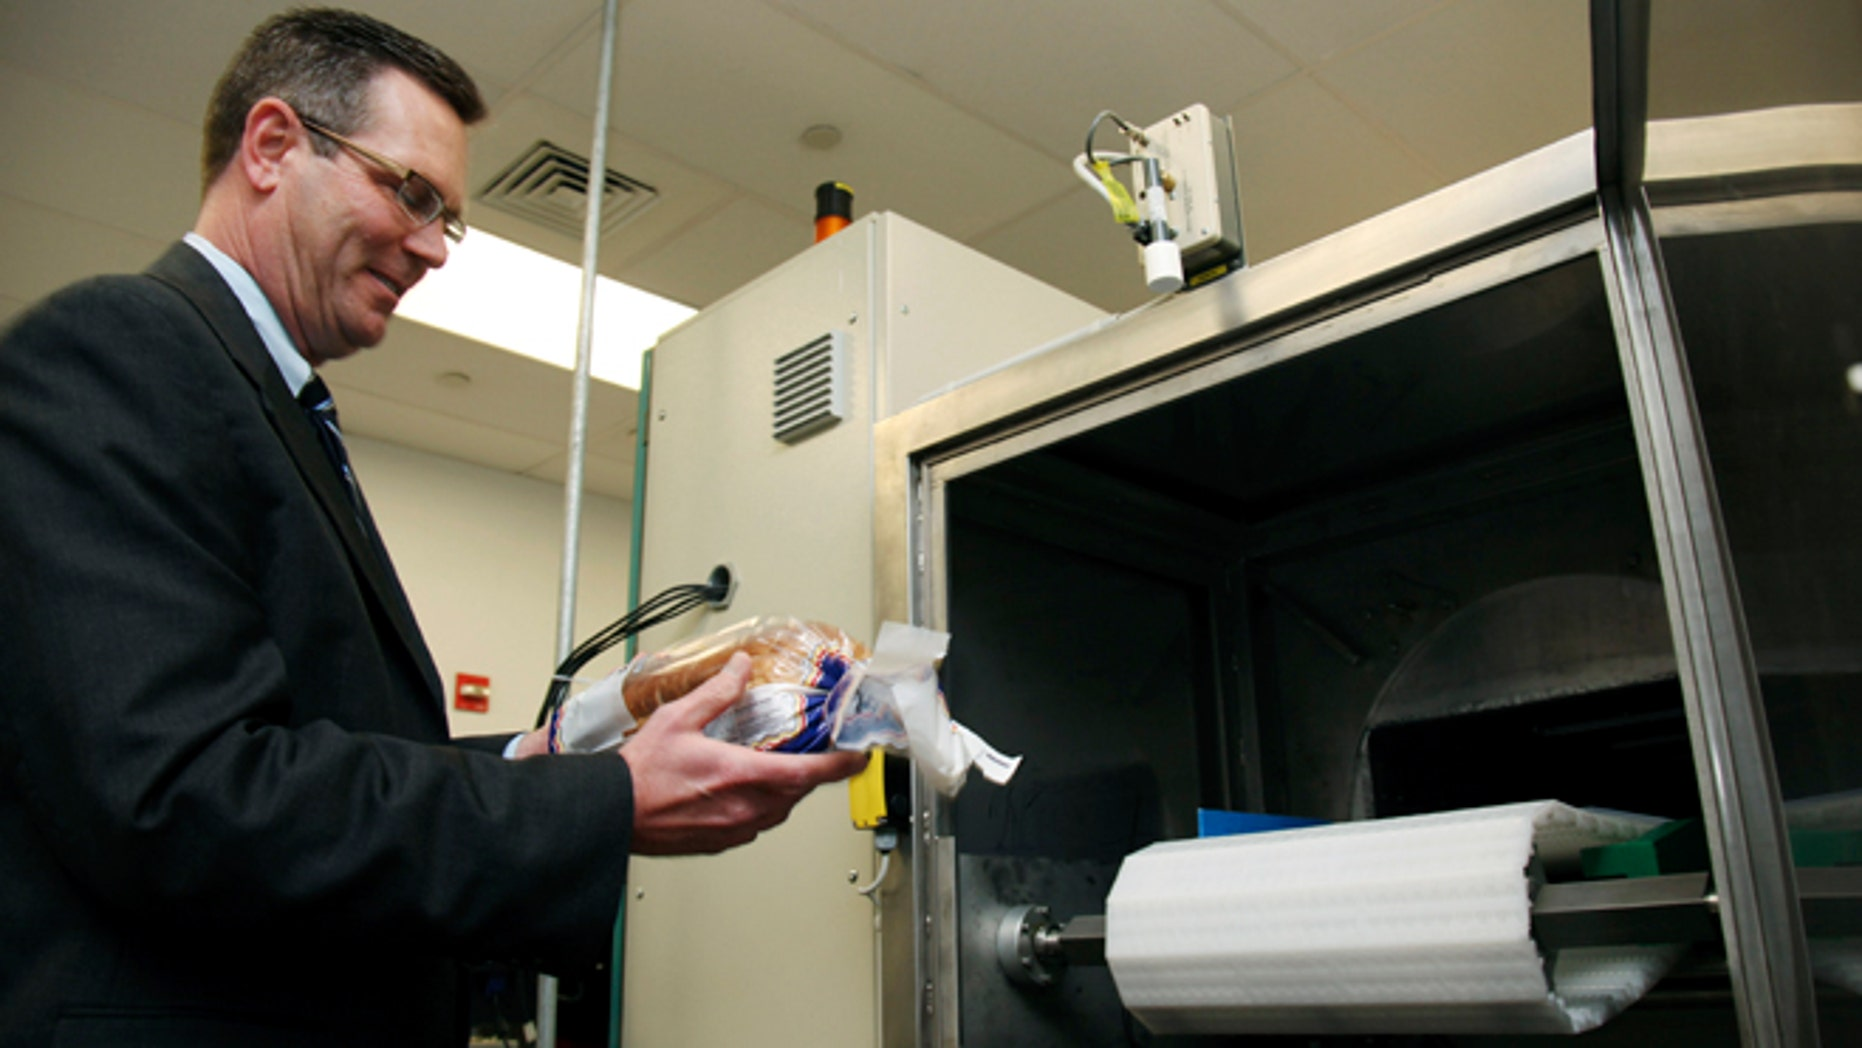 Dec. 6, 2012: Don Stull, chief executive officer of Microzap, Inc., places a loaf of bread inside a patented microwave that kills mold spores in Lubbock, Texas. The company claims the technology allows bread to stay mold-free for 60 days. (AP)